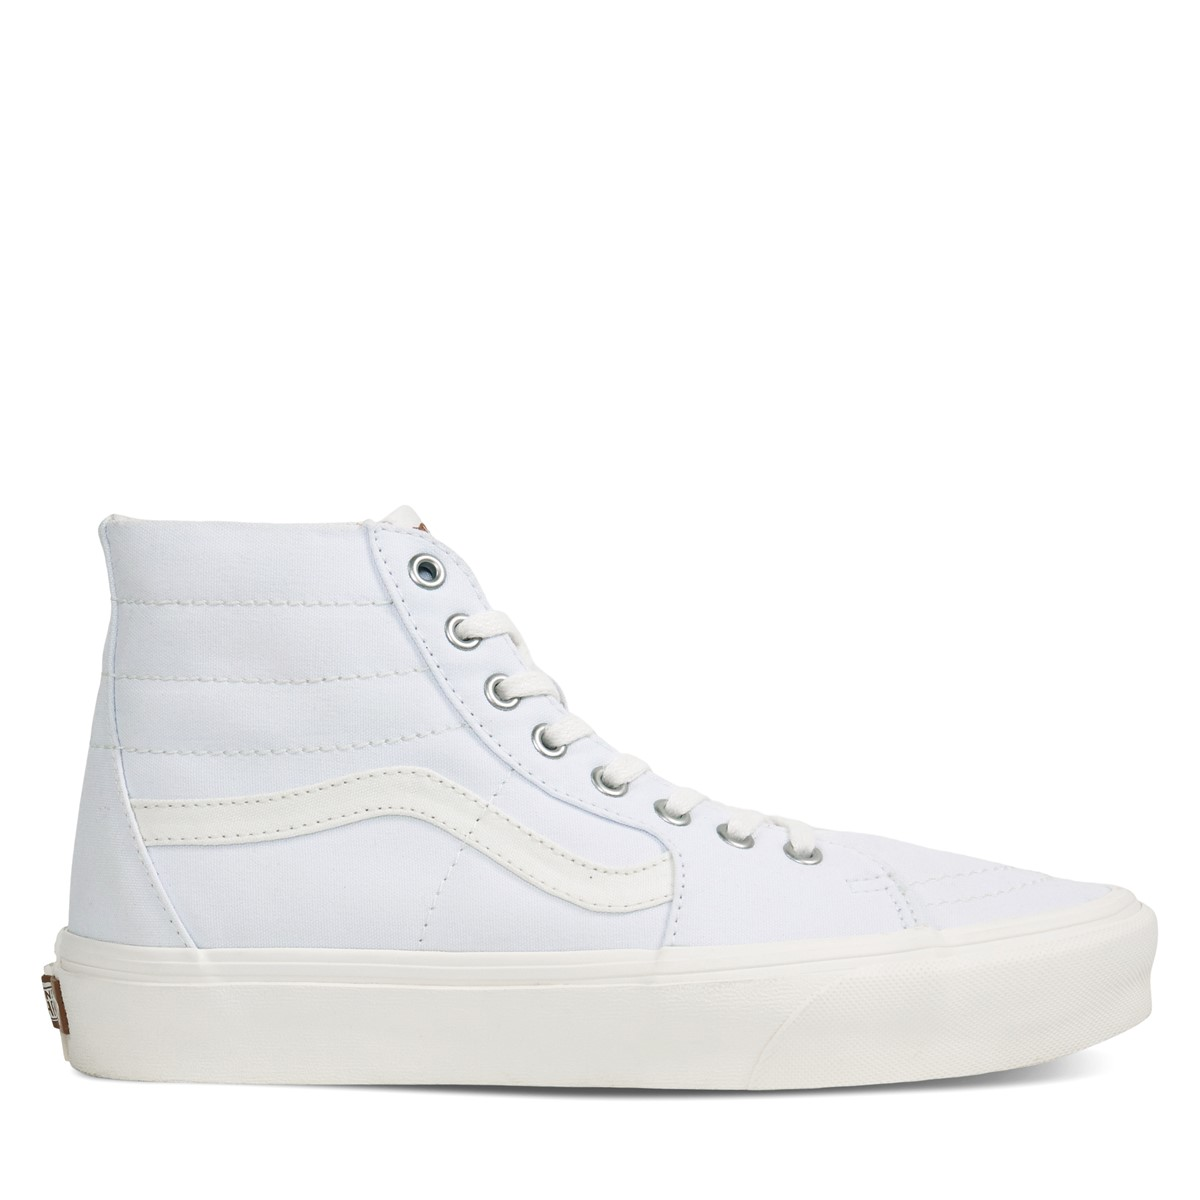 Eco Theory Sk8-Hi Sneakers in White/Beige